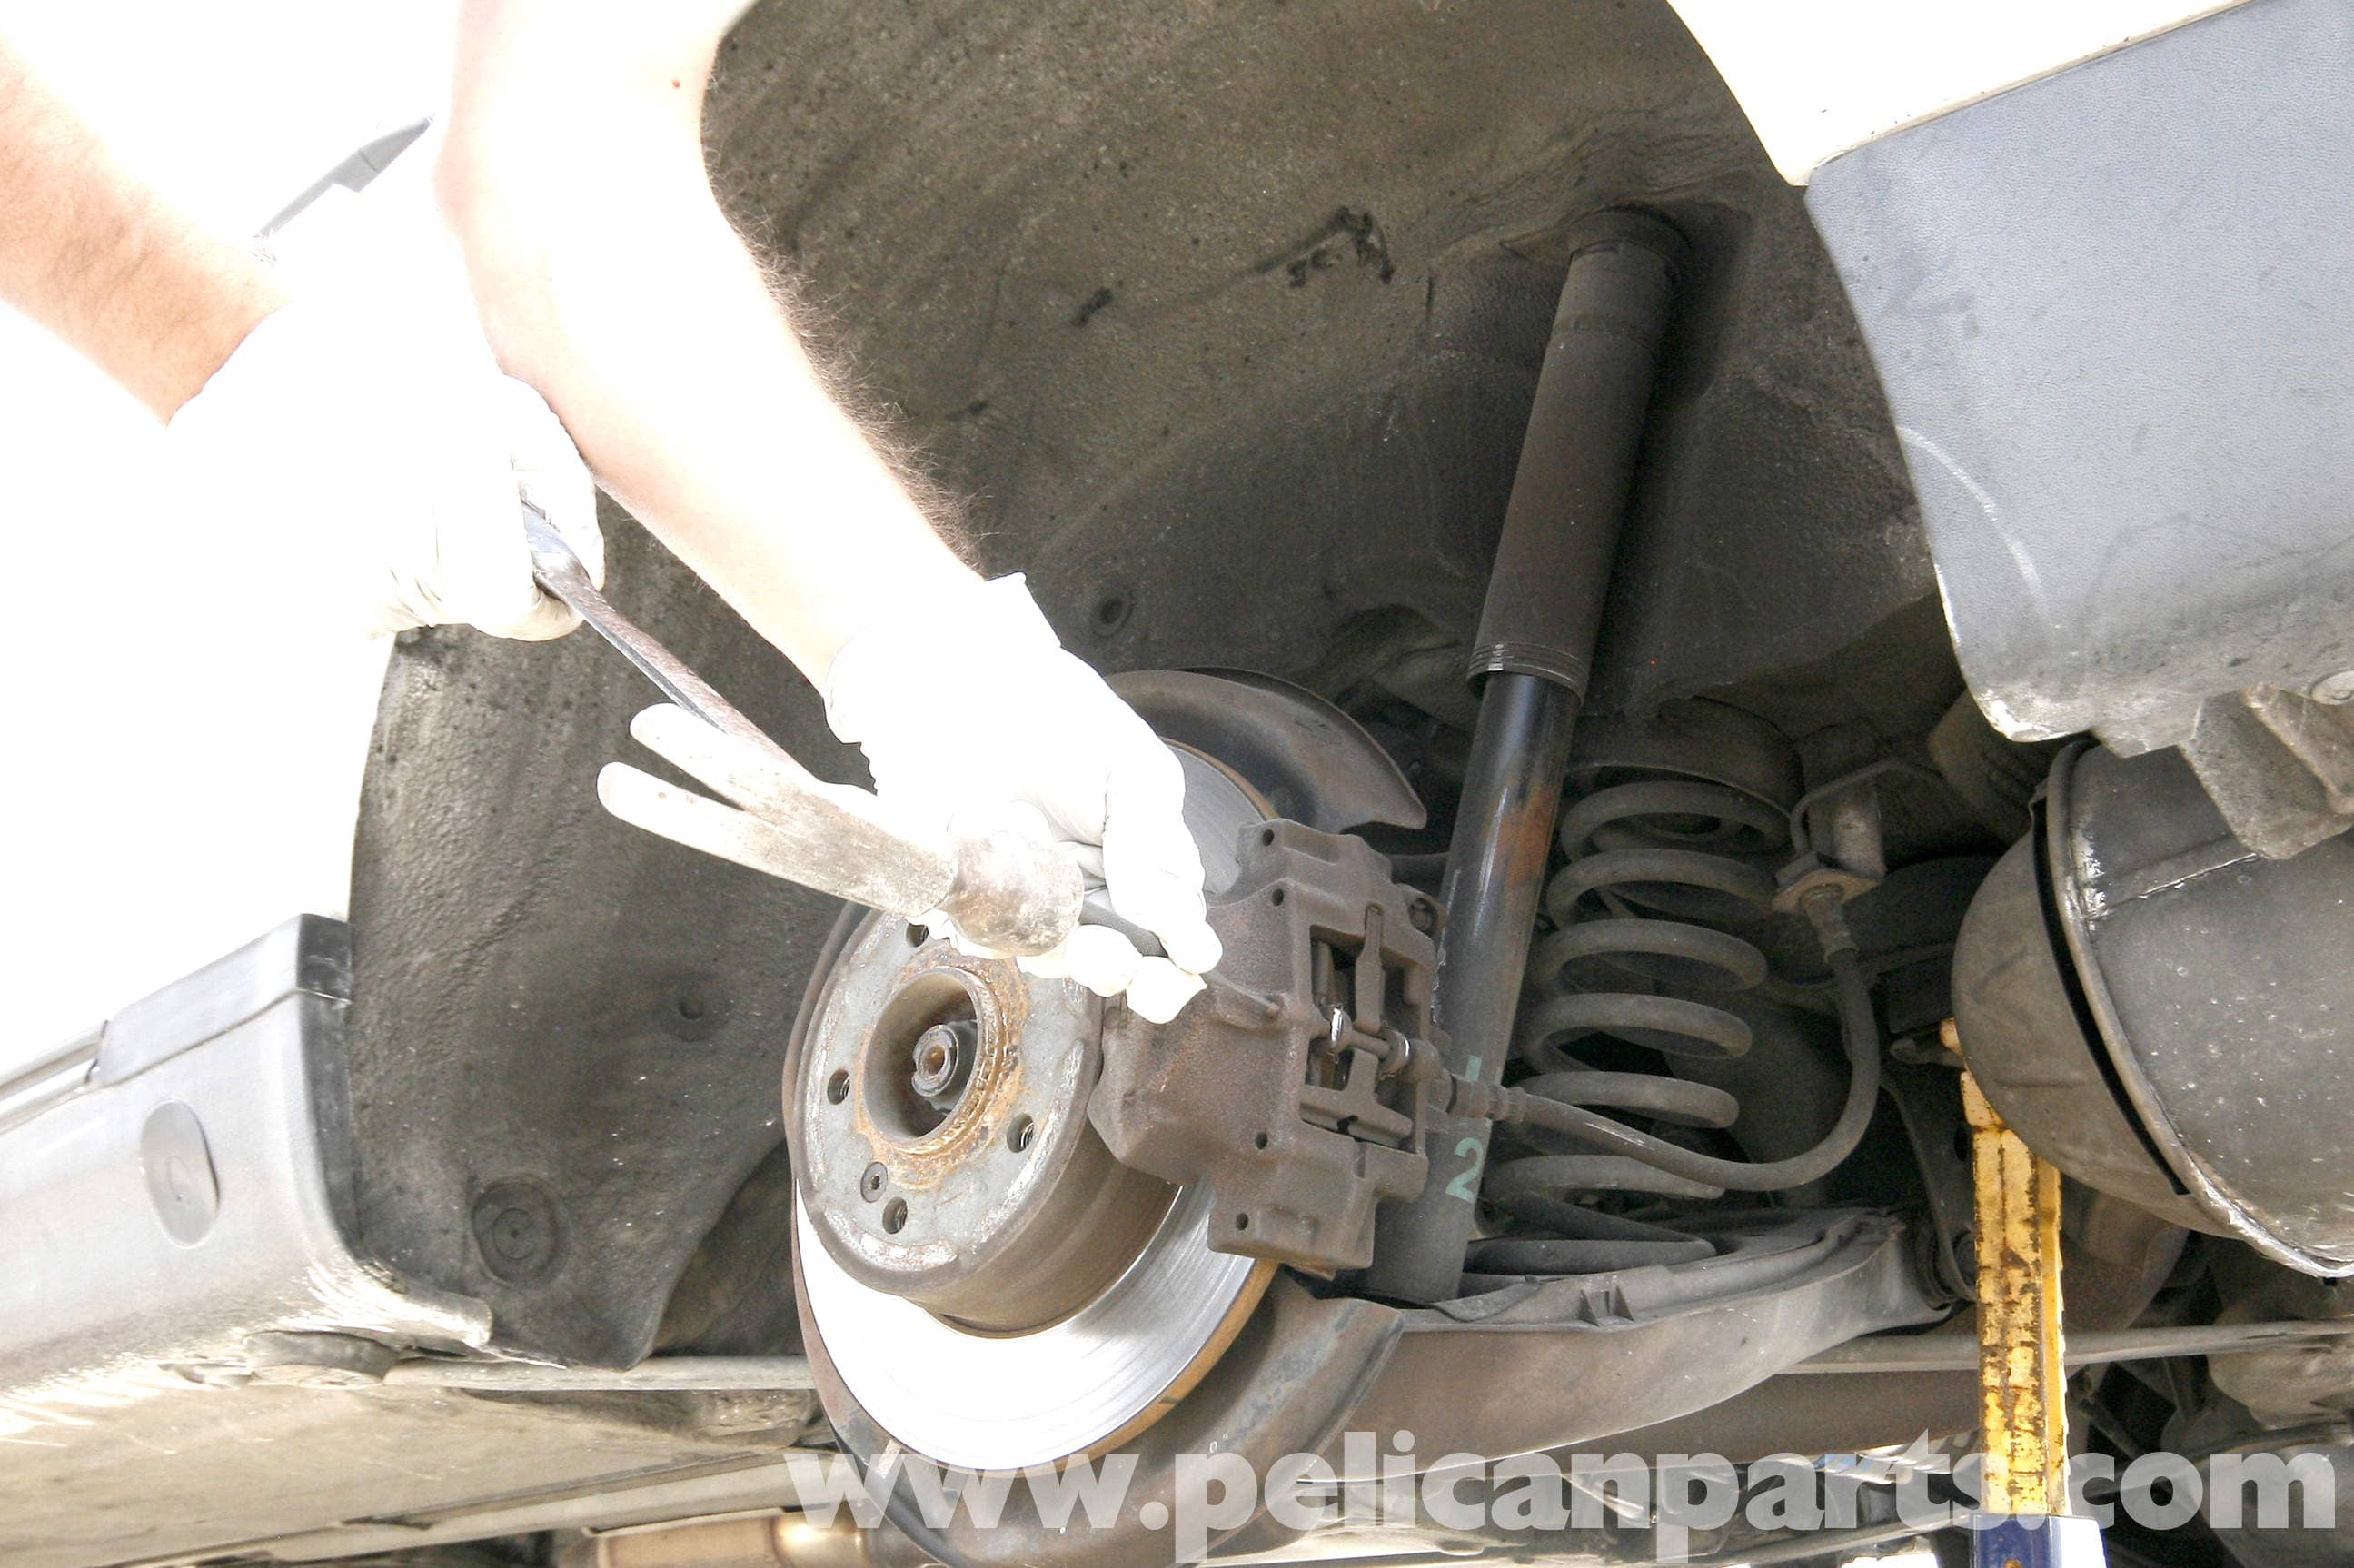 Mercedes Benz Slk 230 Rear Brake Pad Replacement 1998 2004 Pads Squeaking Noise When Brakes Applied Car Judders Large Image Extra